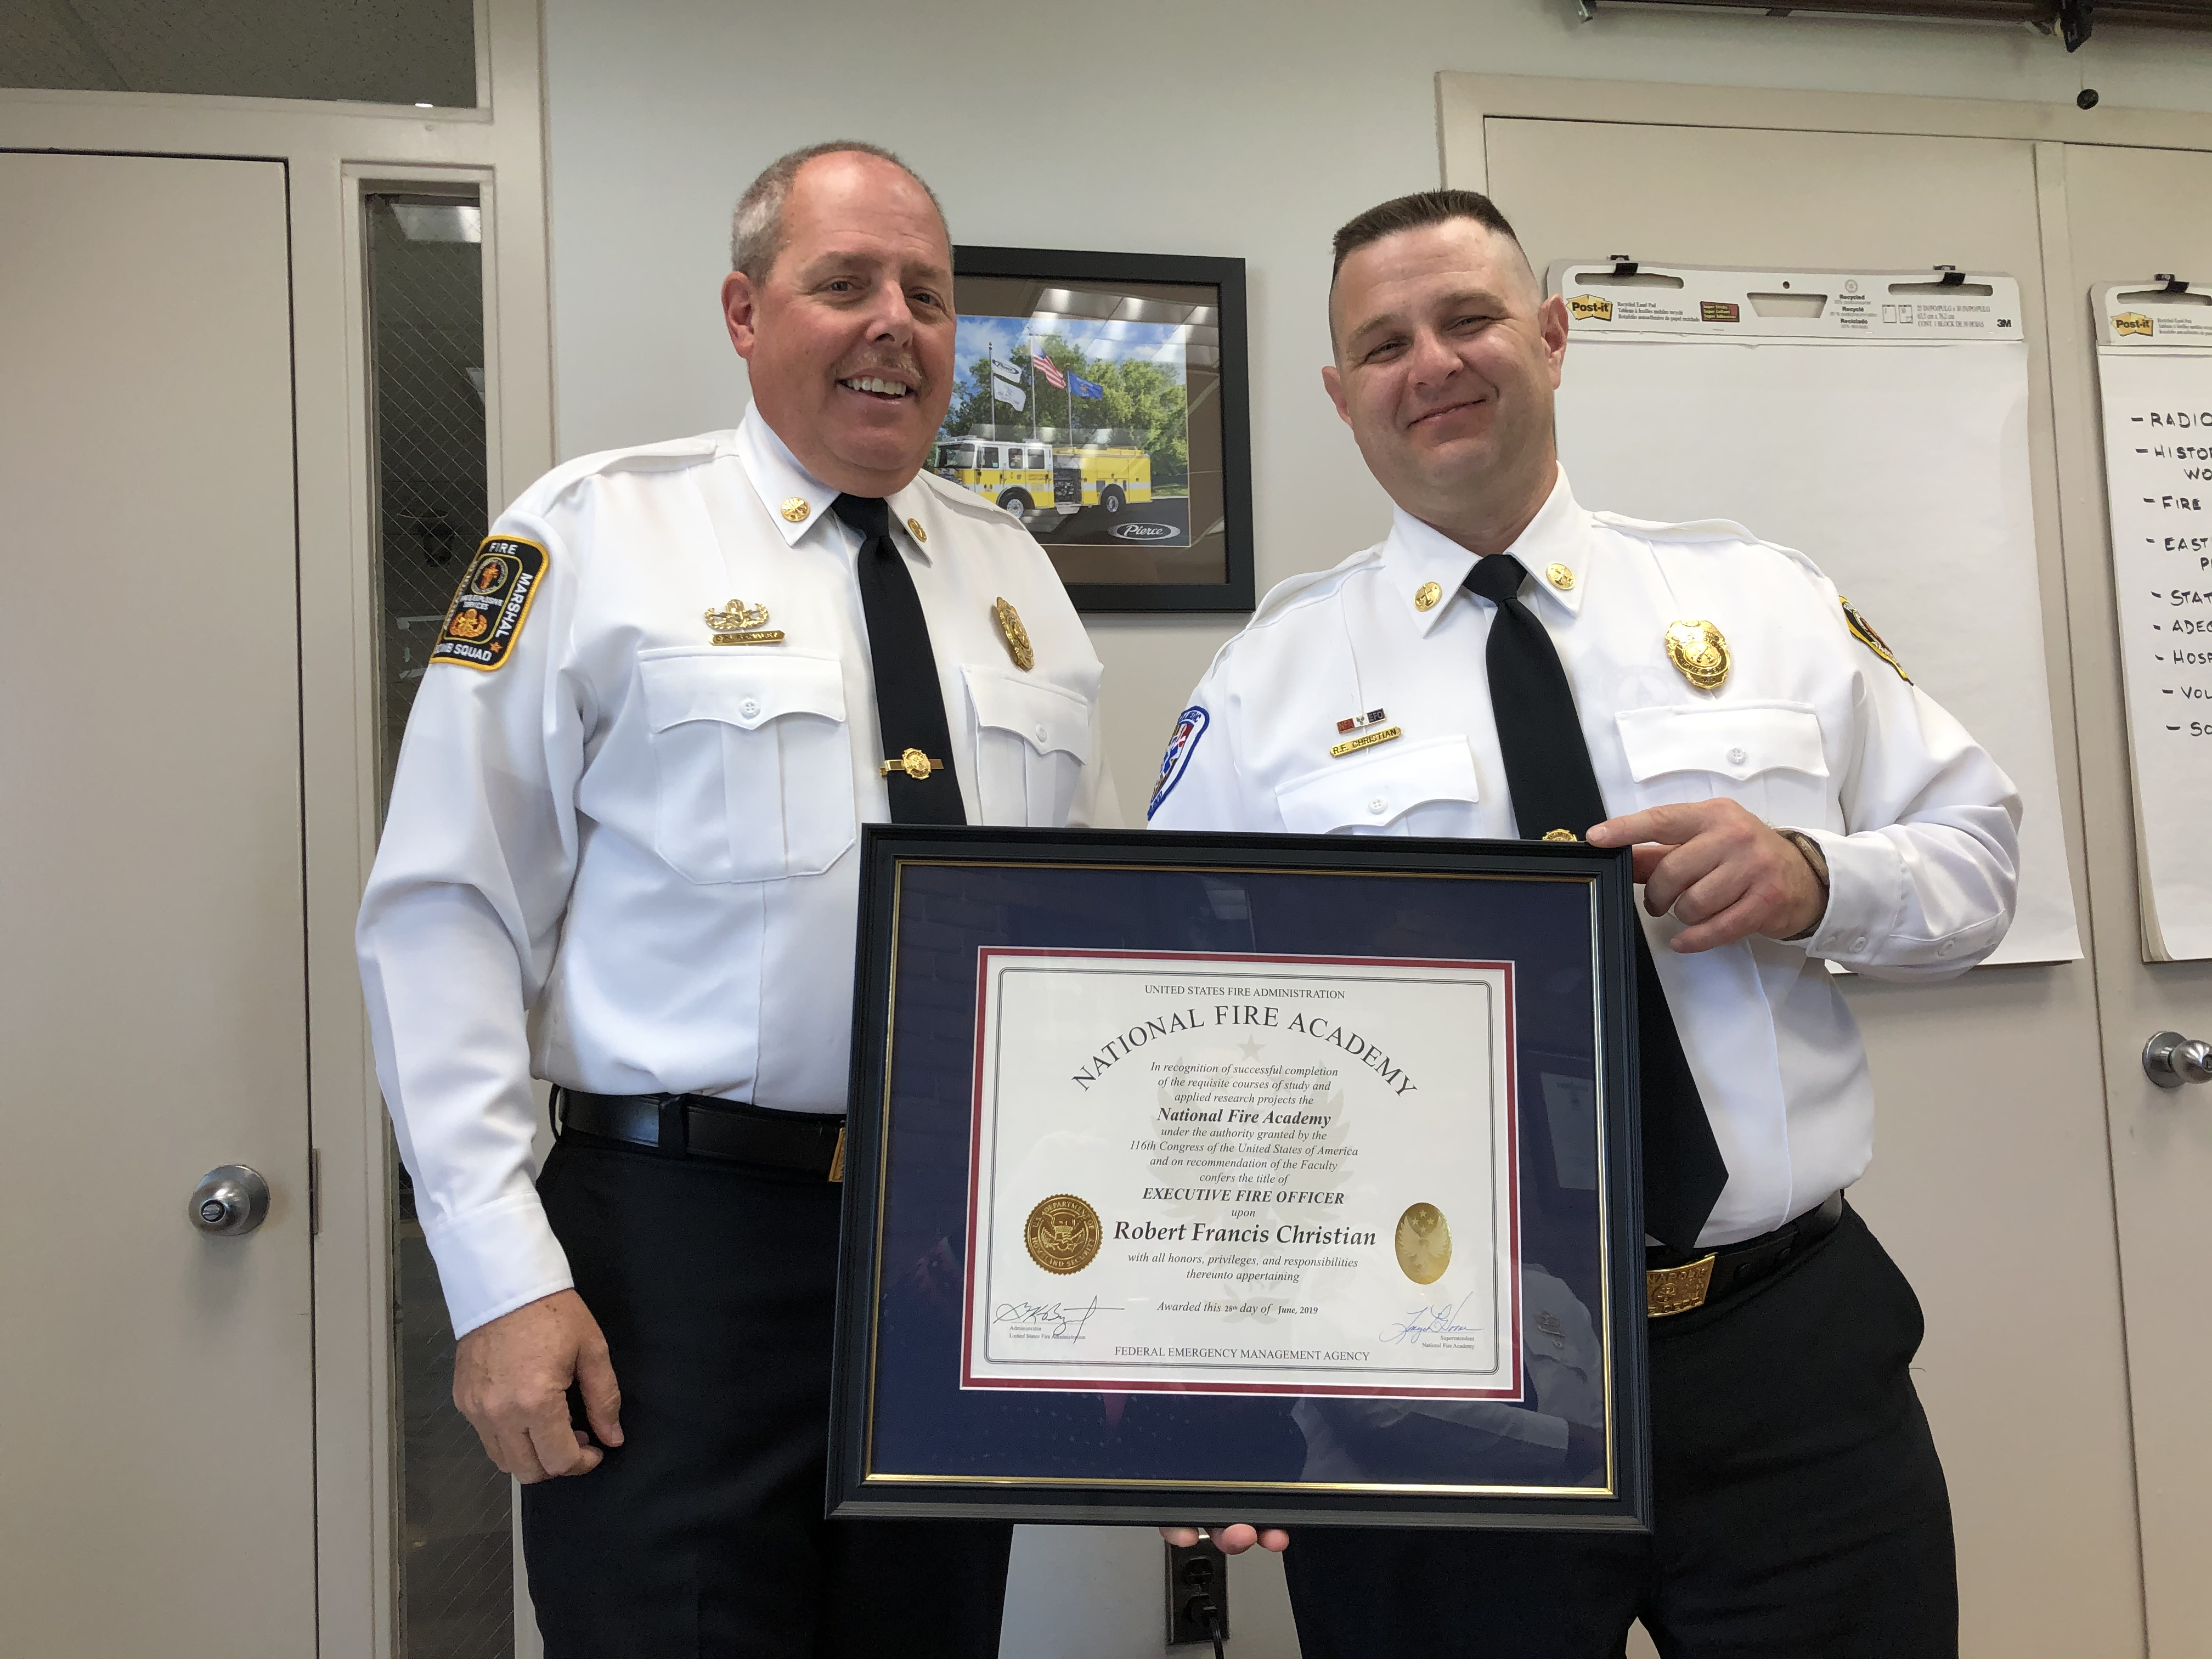 Fire Chief Remaley presented BC Christian with an Executive Fire Officer award